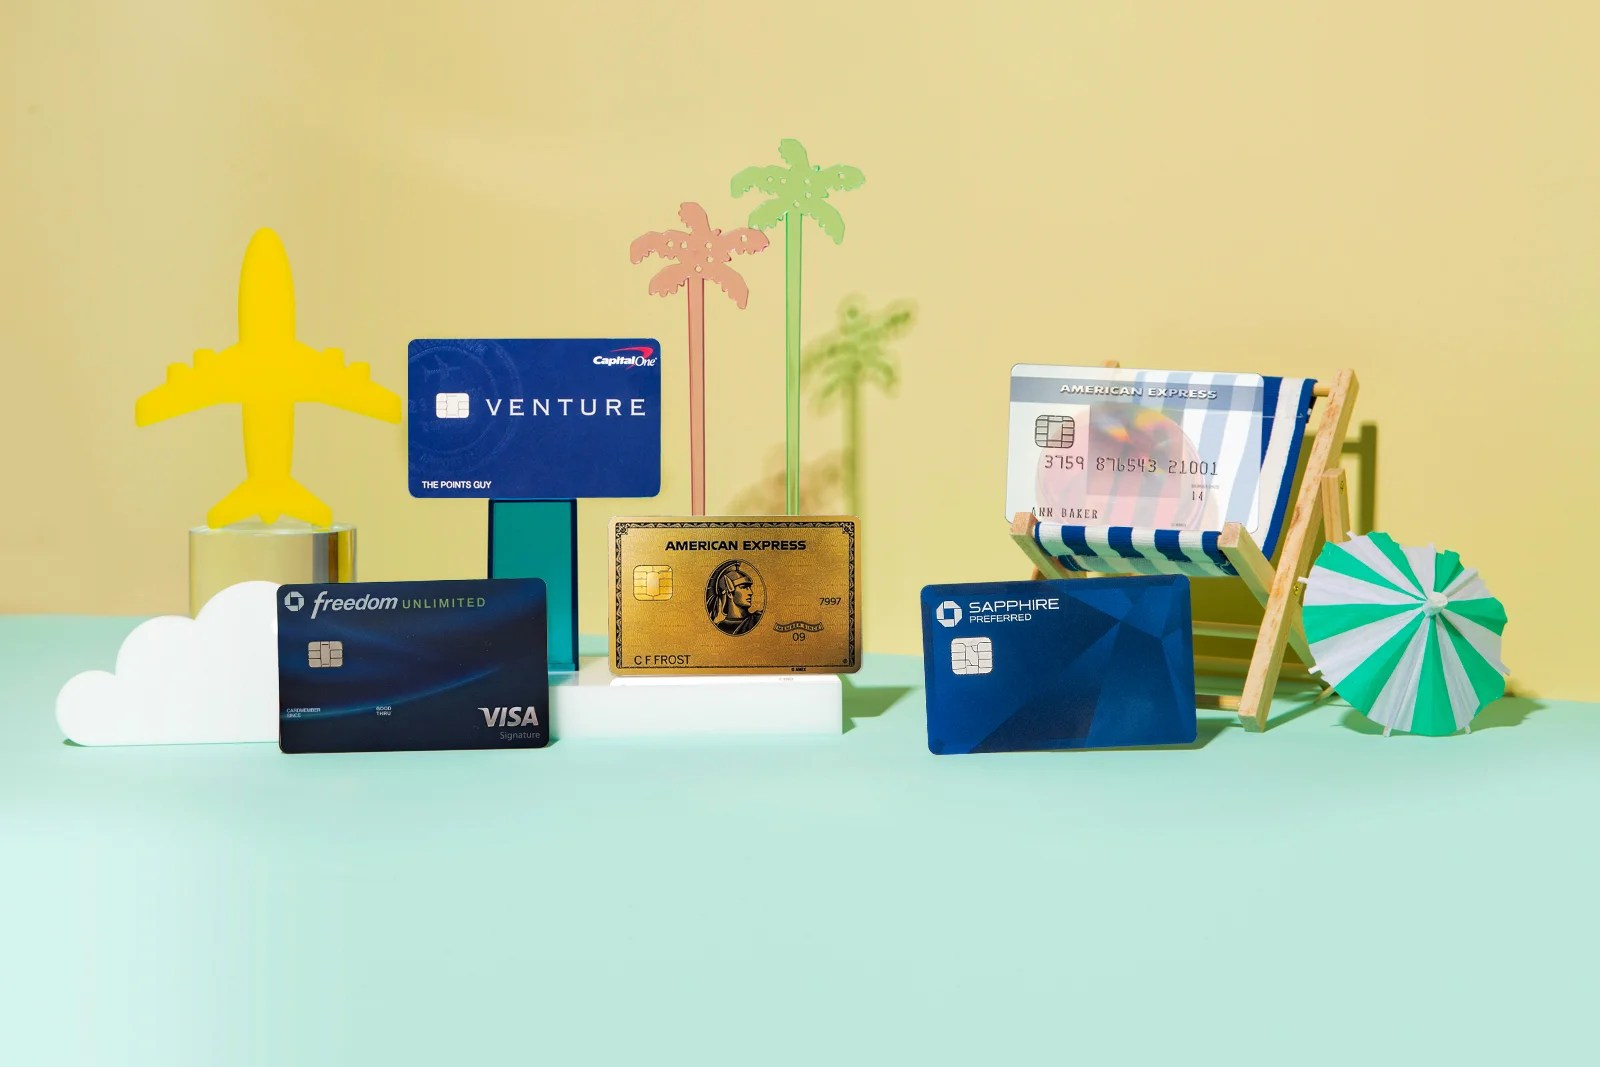 These Are the Best Options for Your First Credit Card